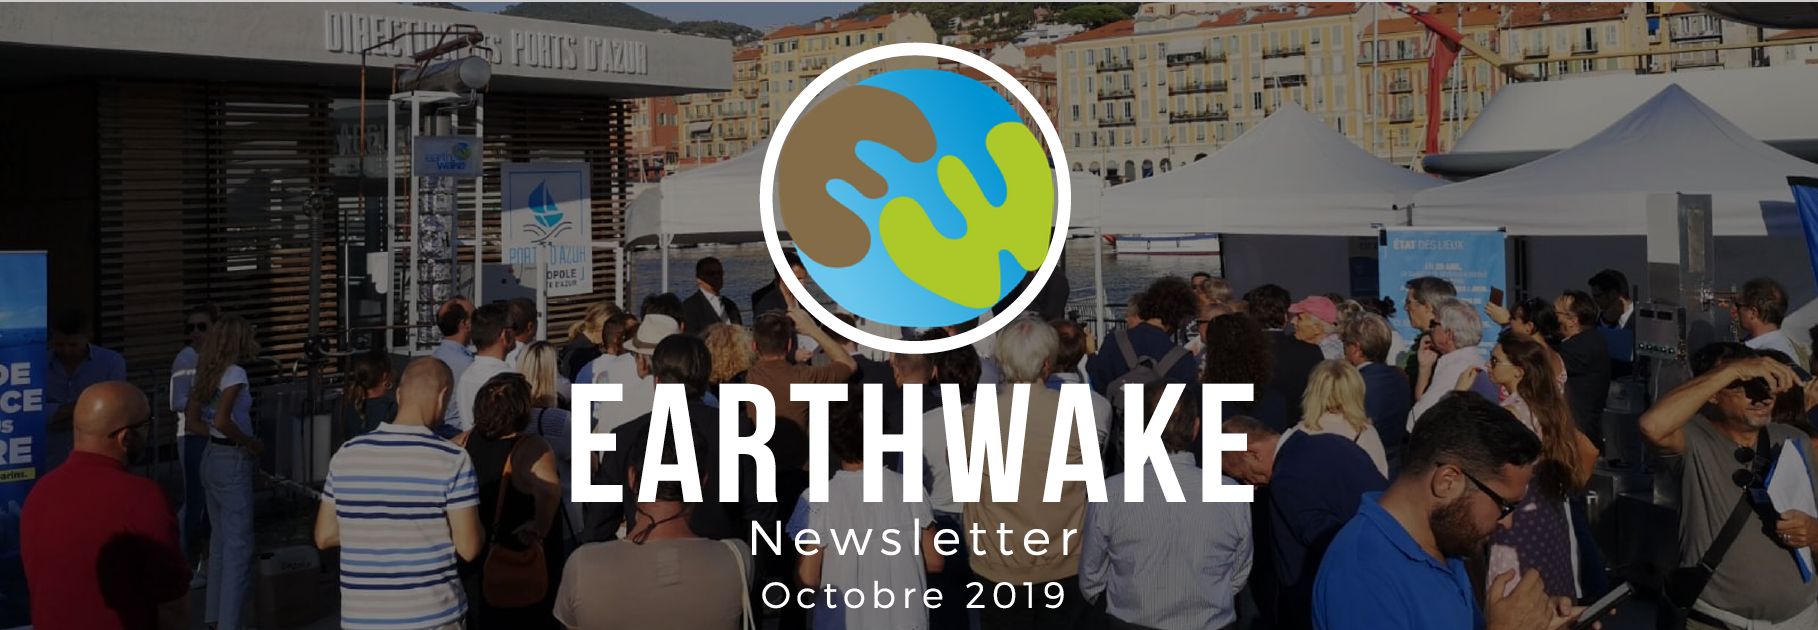 Newsletter d'Earthwake – Octobre 2019